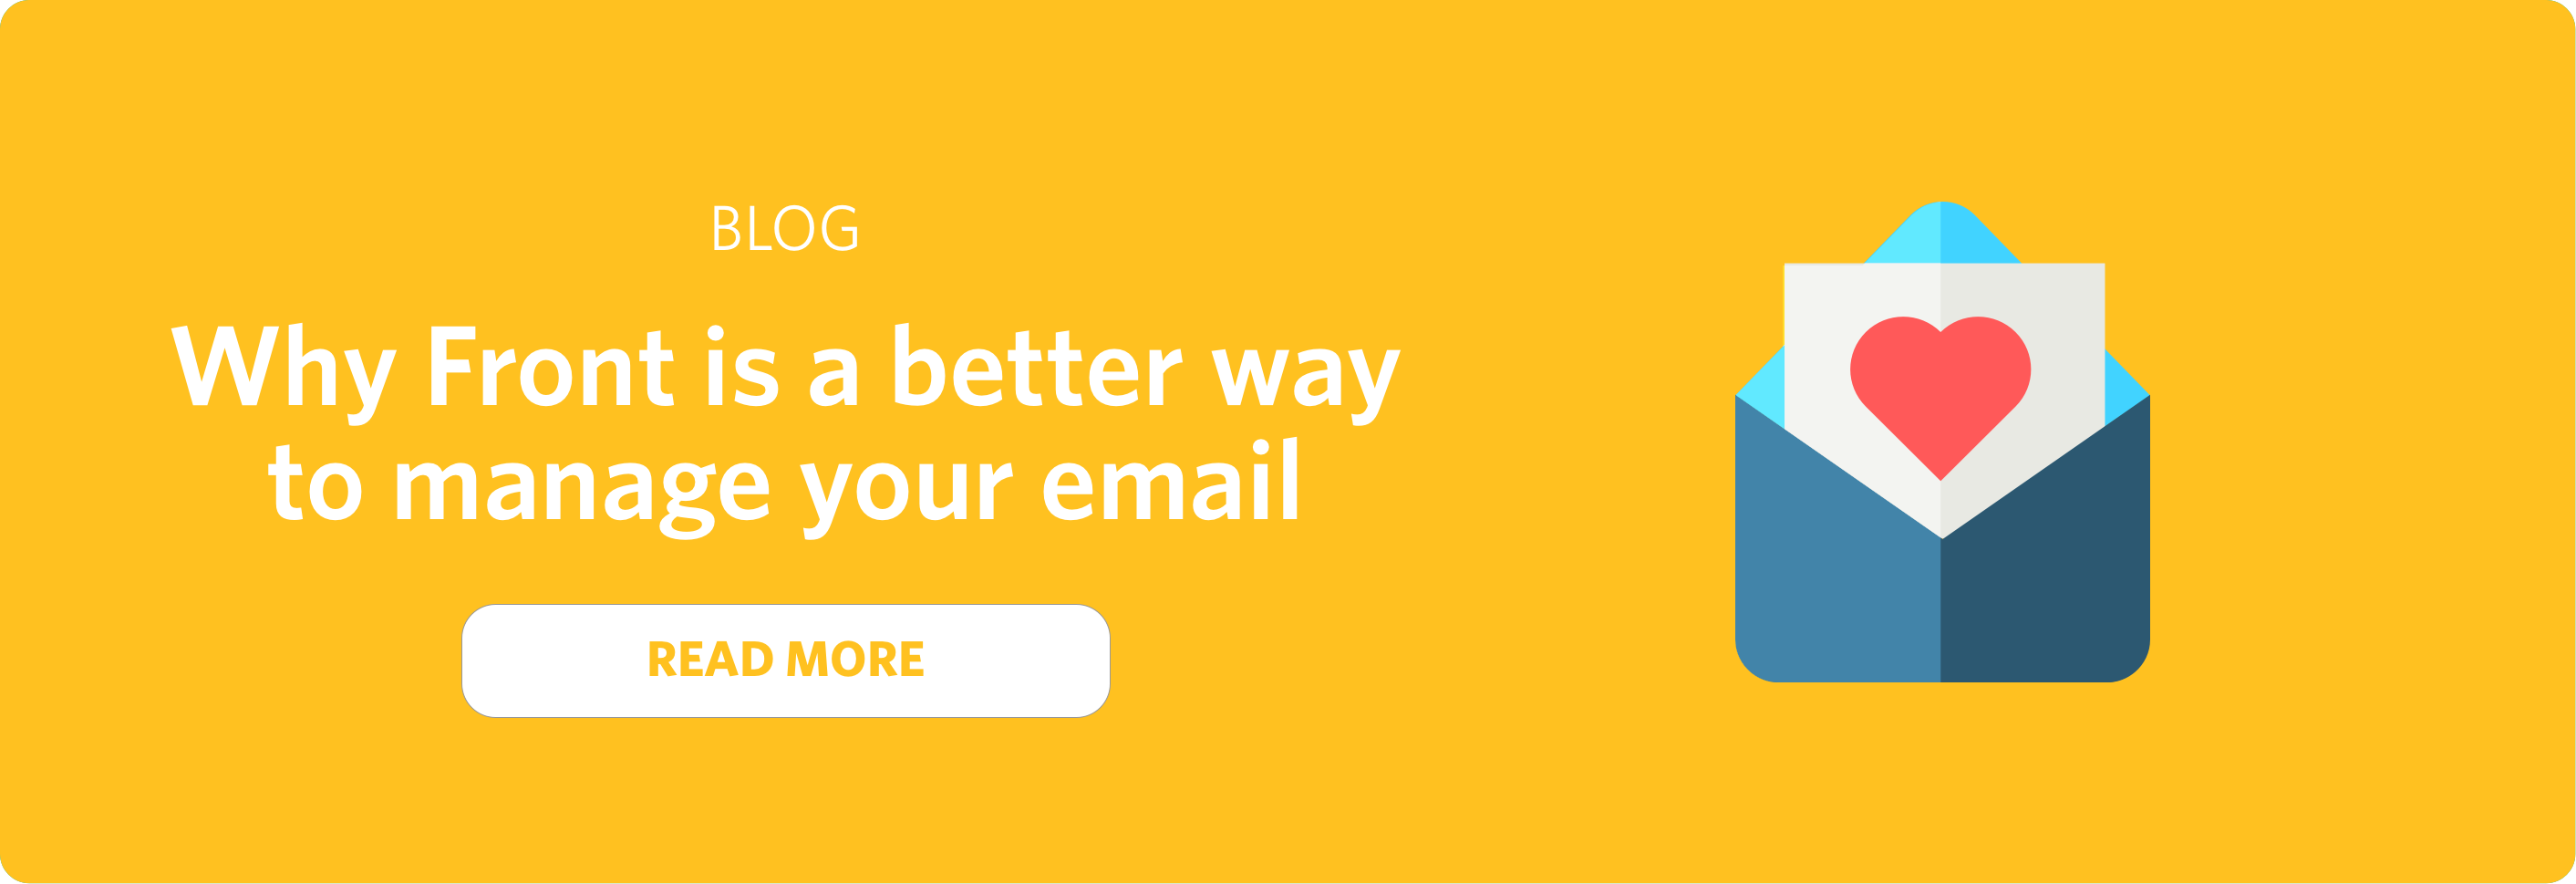 why Front is a better way to manage your email